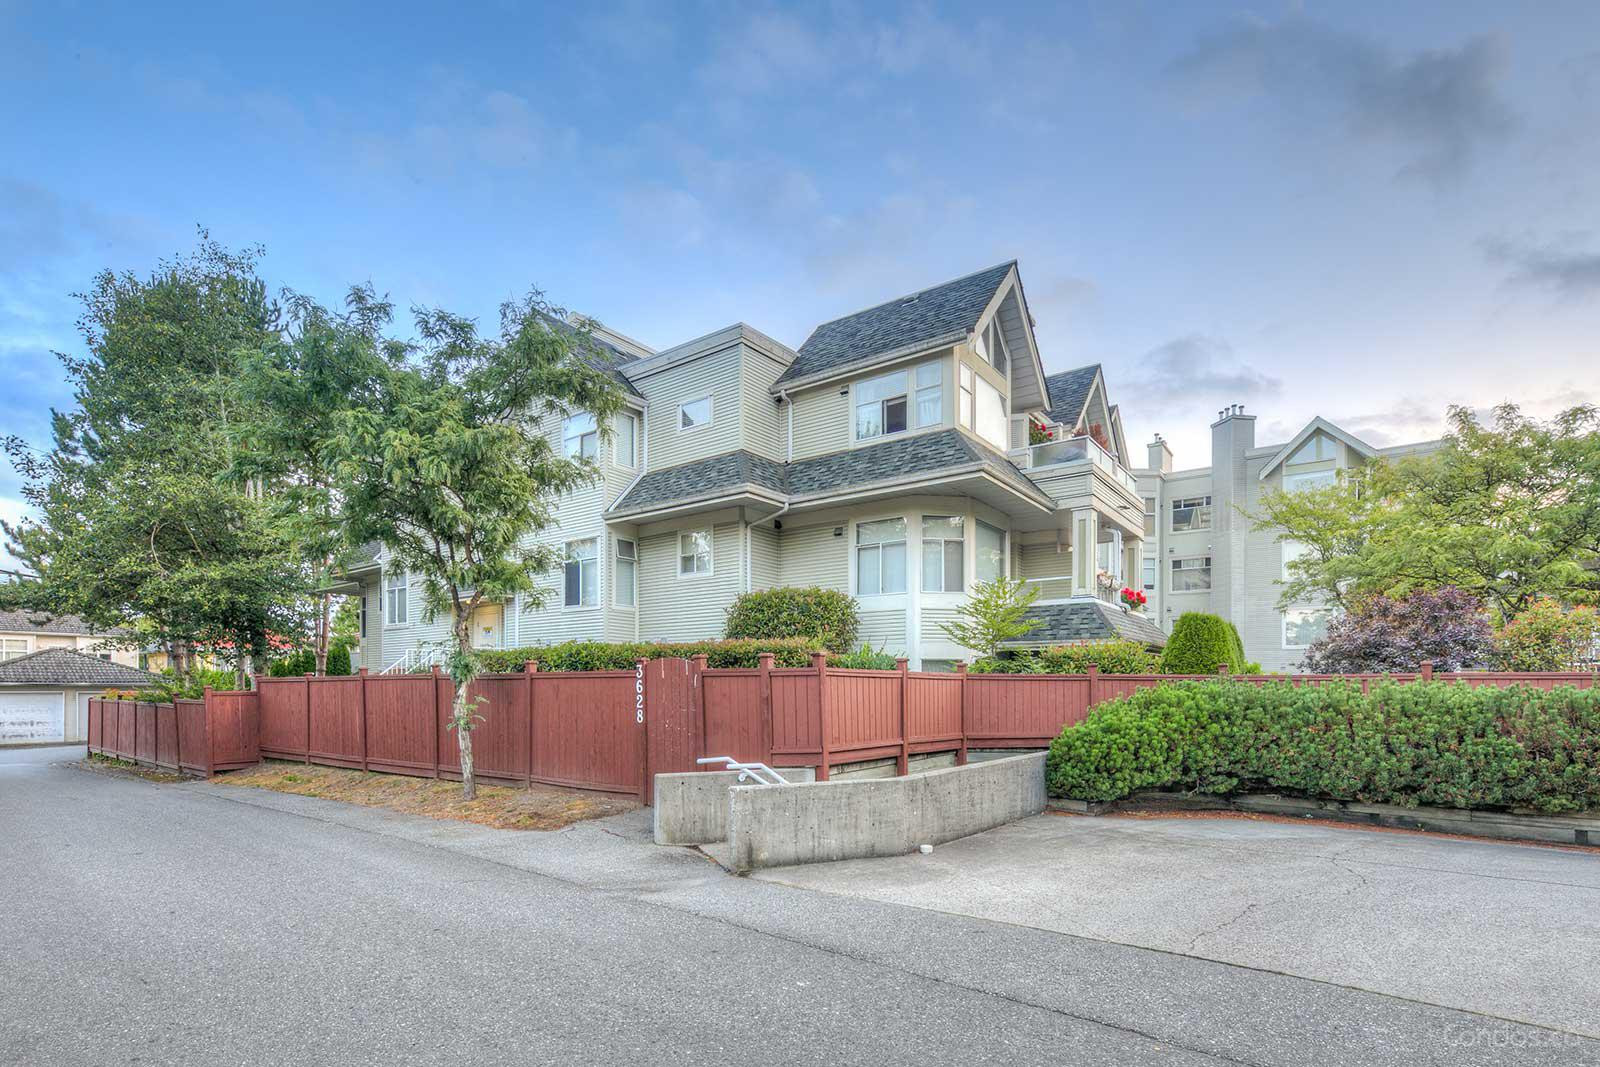 Raintree Gardens at 3628 Rae Ave, Vancouver 0